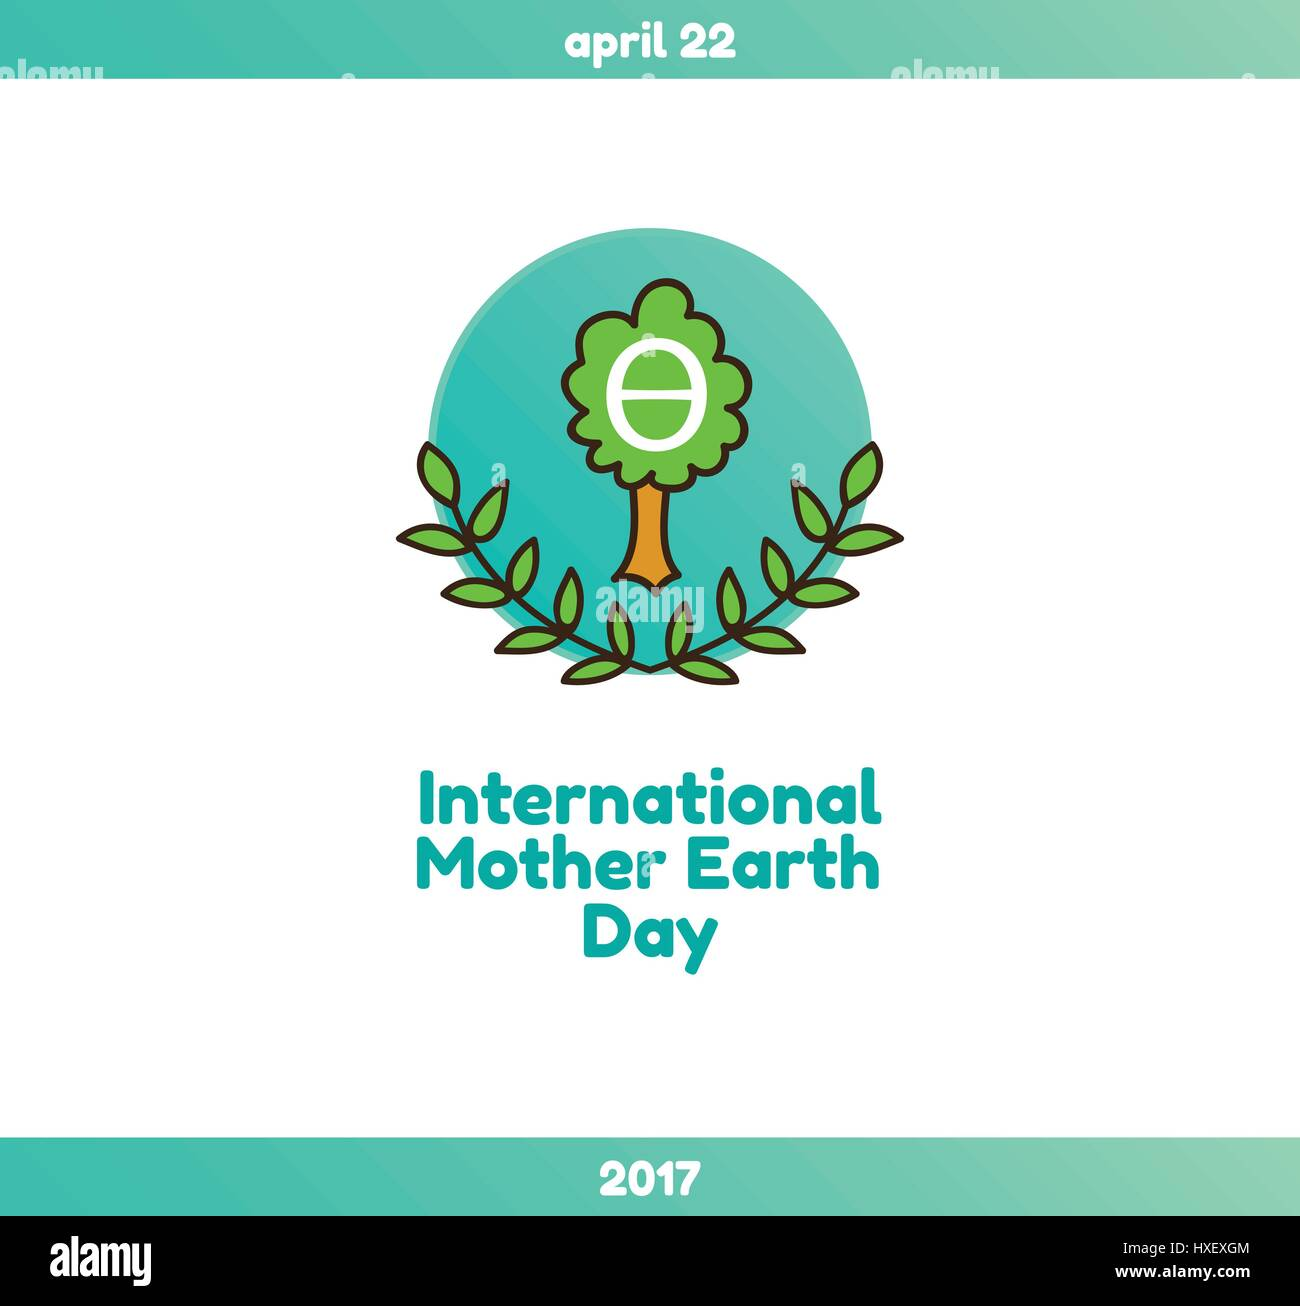 International mother earth day april 22 2017 the event theme is international mother earth day april 22 2017 the event theme is environmental and climate literacy the theta symbol is an element of ecology flag biocorpaavc